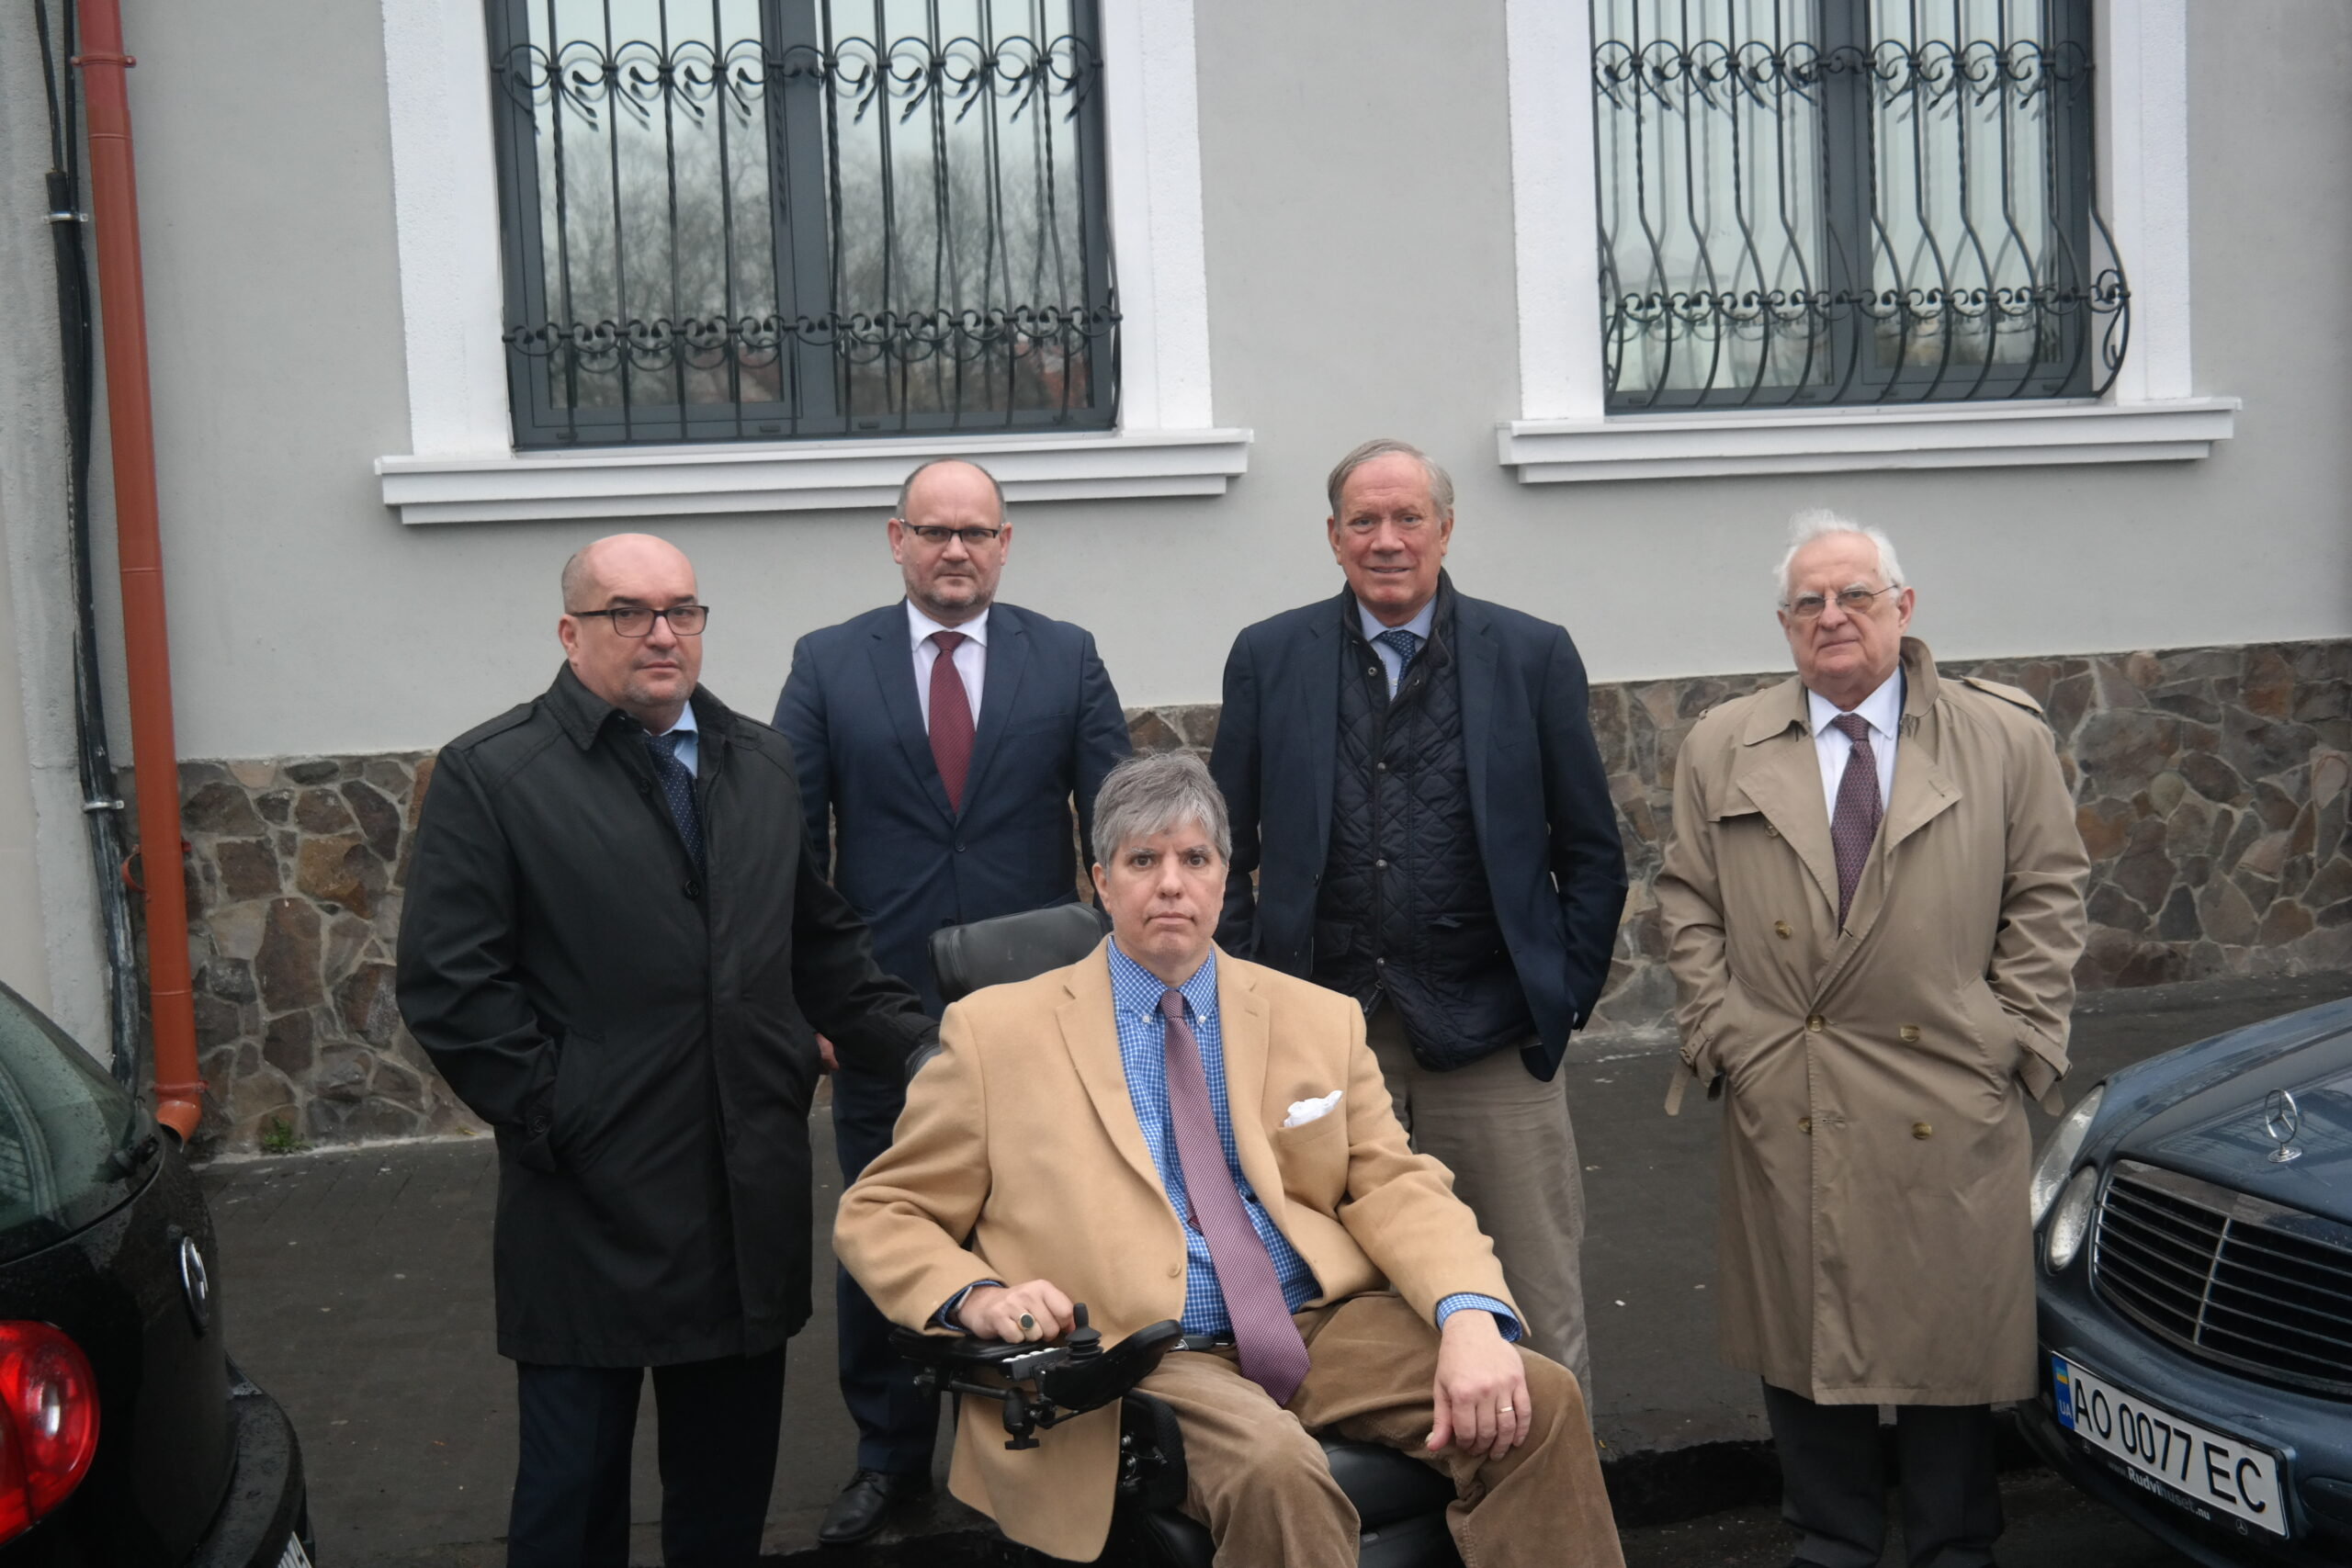 Dr. László Brenzovics, György Kota, Gov. George Pataki, Zsolt Szekeres and Maximilian Teleki in front of the recently restored head office of the Cultural Alliance of Hungarians in Sub-Carpathia (KMKSZ) in downtown Ungvár (Uzhgorod) on March 10, 2019